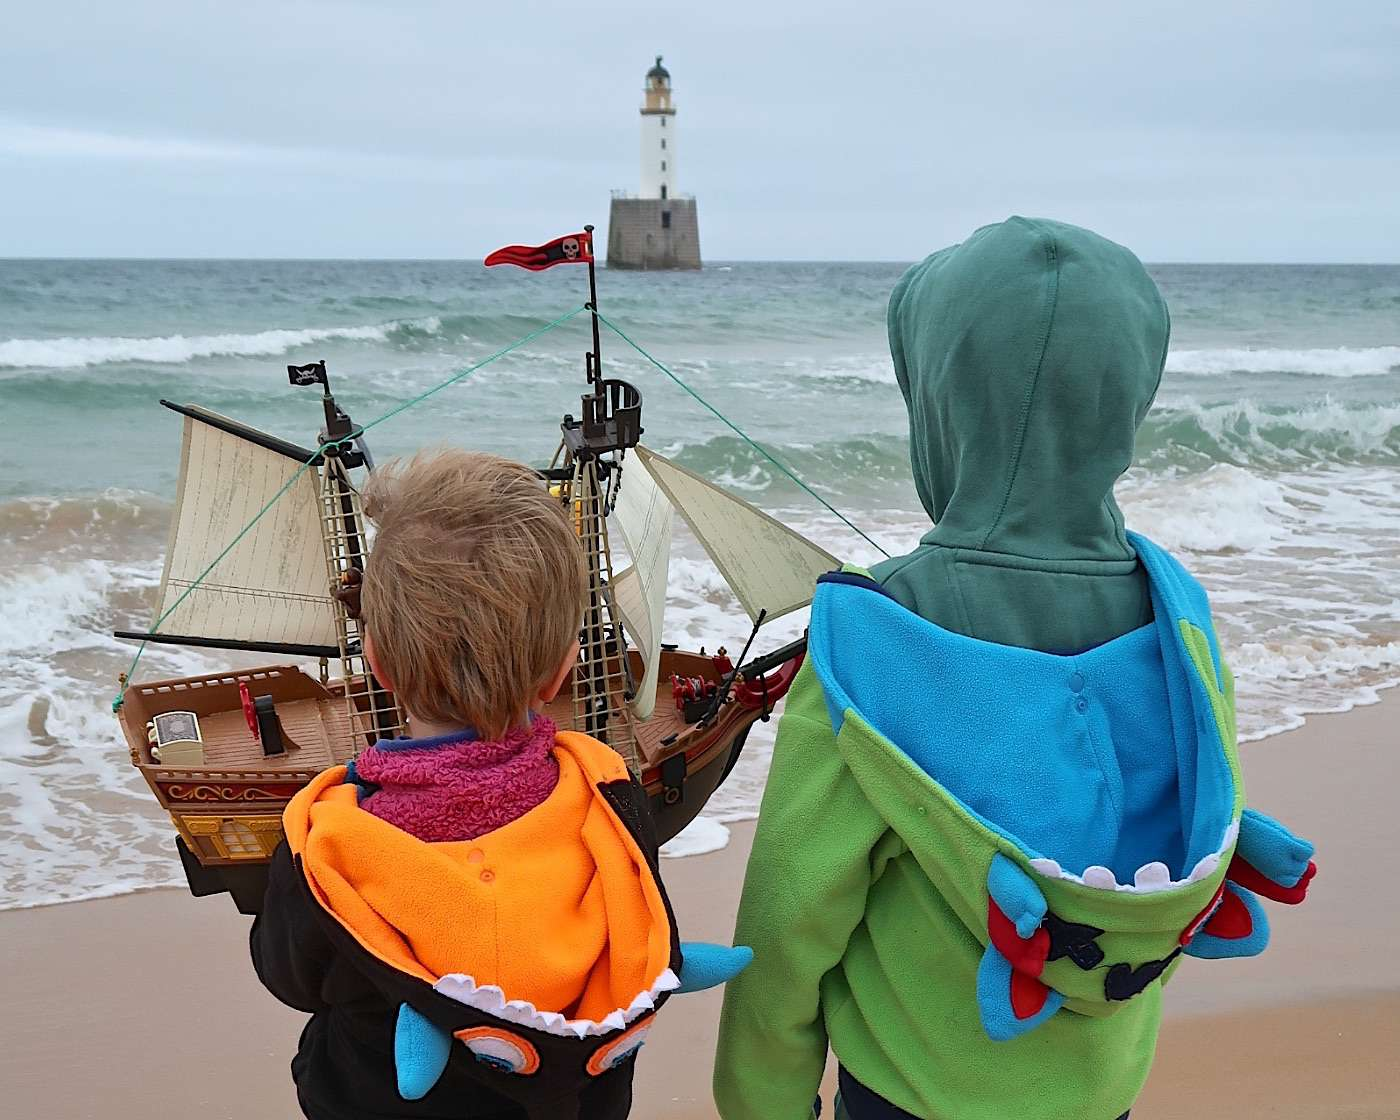 Harry and Ollie hold the Adventure as they look out to sea.